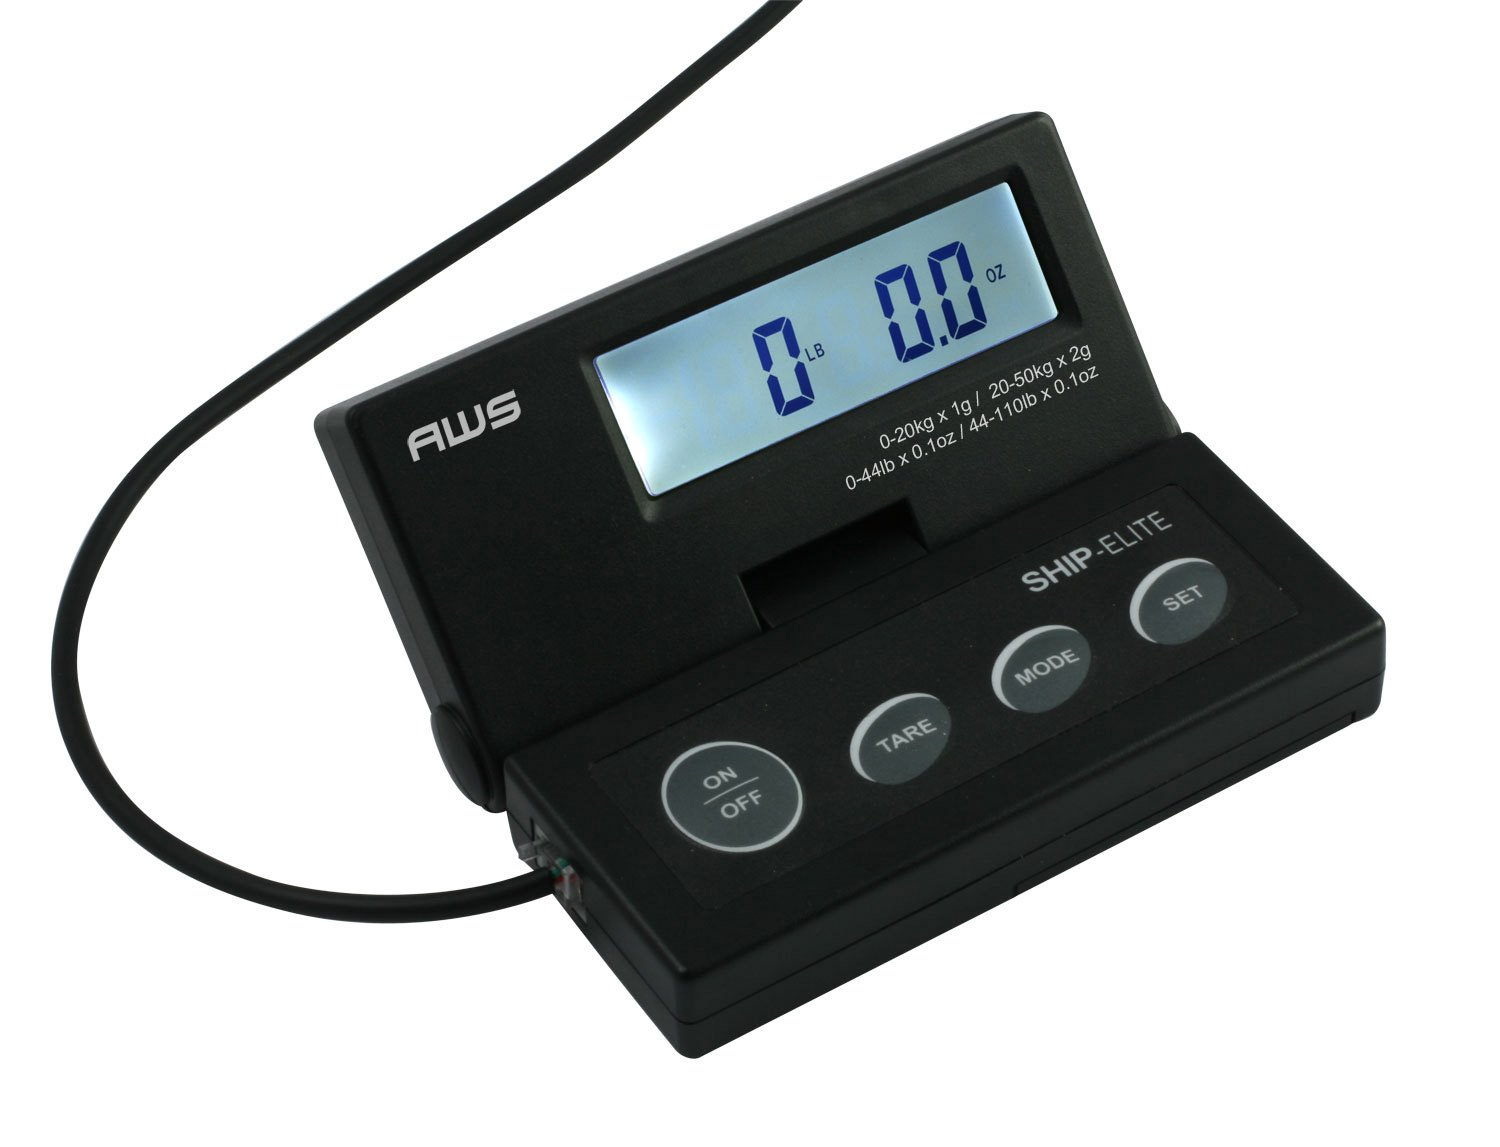 American Weigh Scales SE-50 Ship Elite Digital Shipping Scale